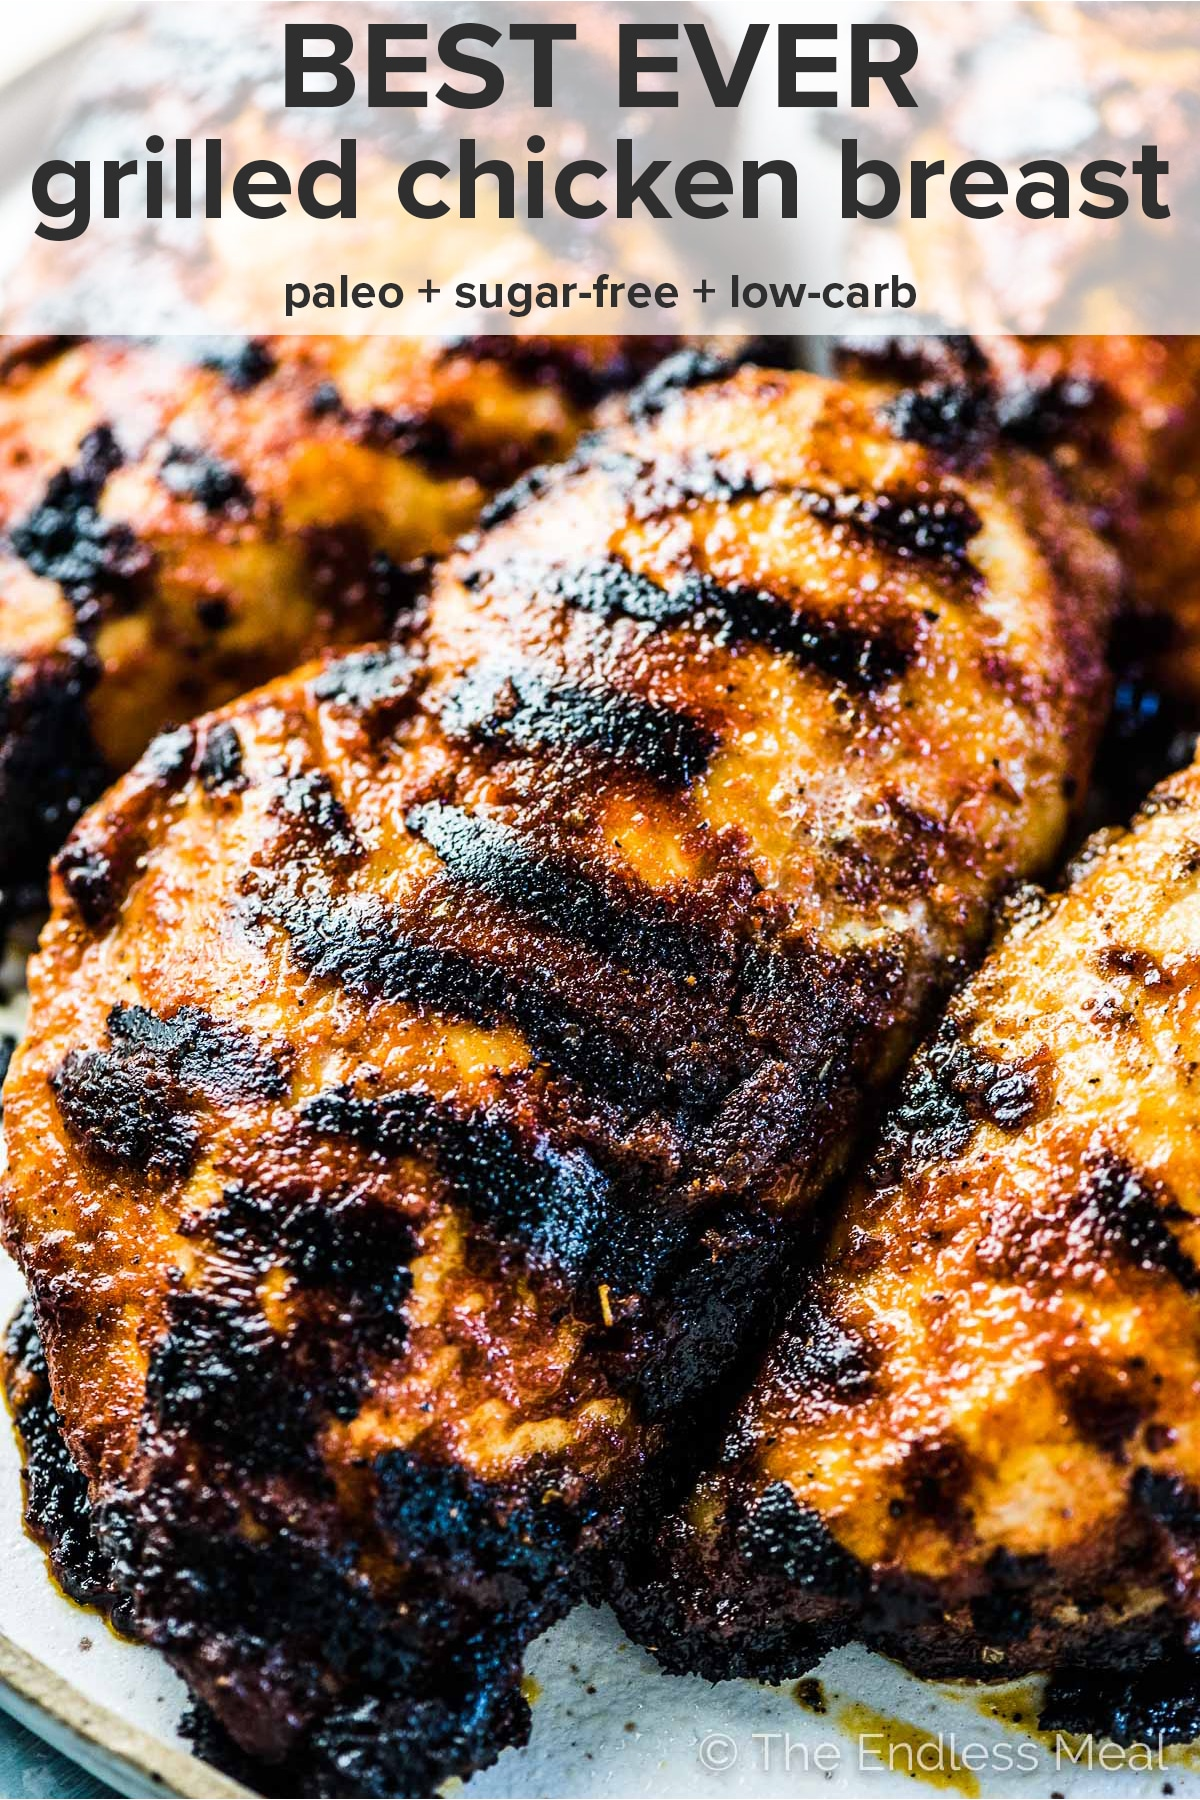 Juicy grilled chicken breast on a plate with the recipe title at the top of the picture.